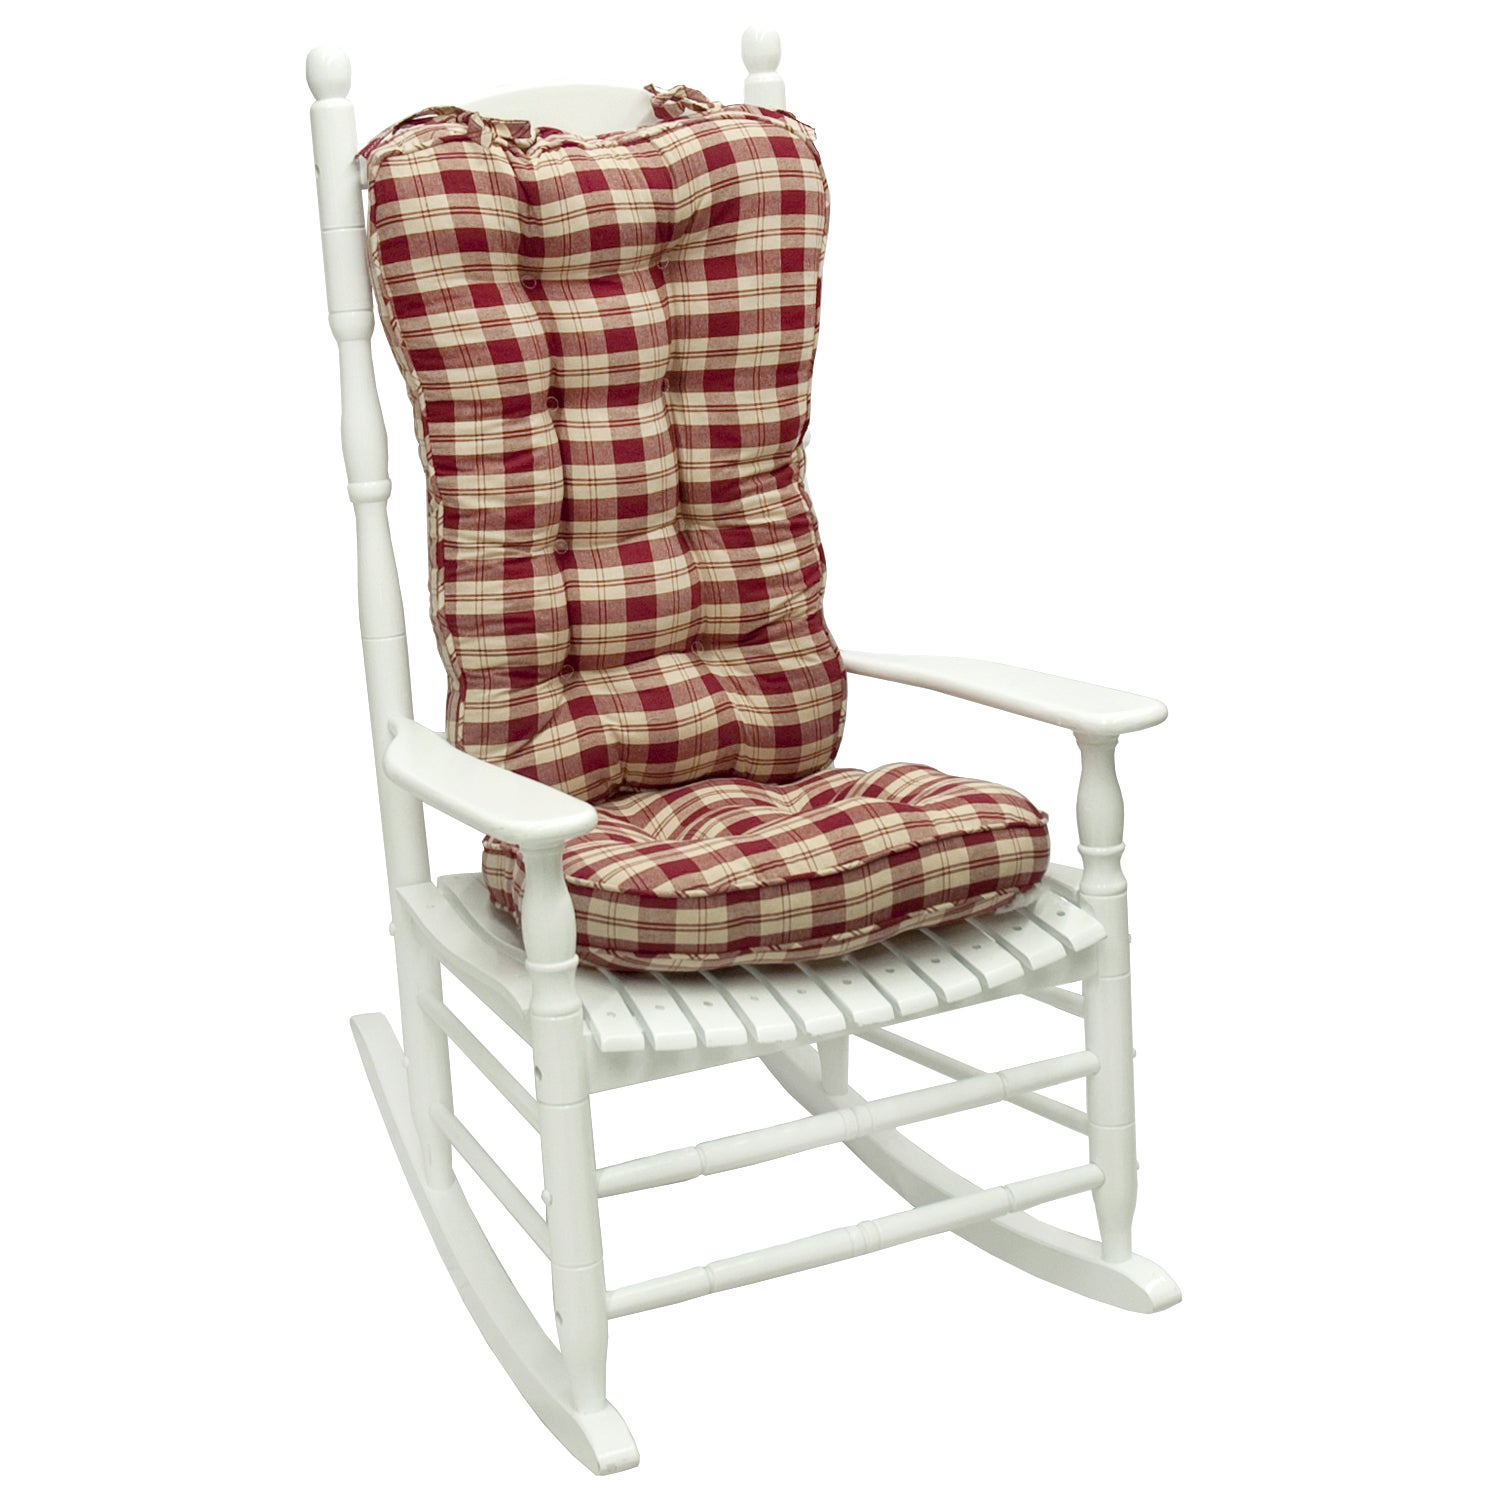 rocking chair cushion overstock shopping great deals on chair